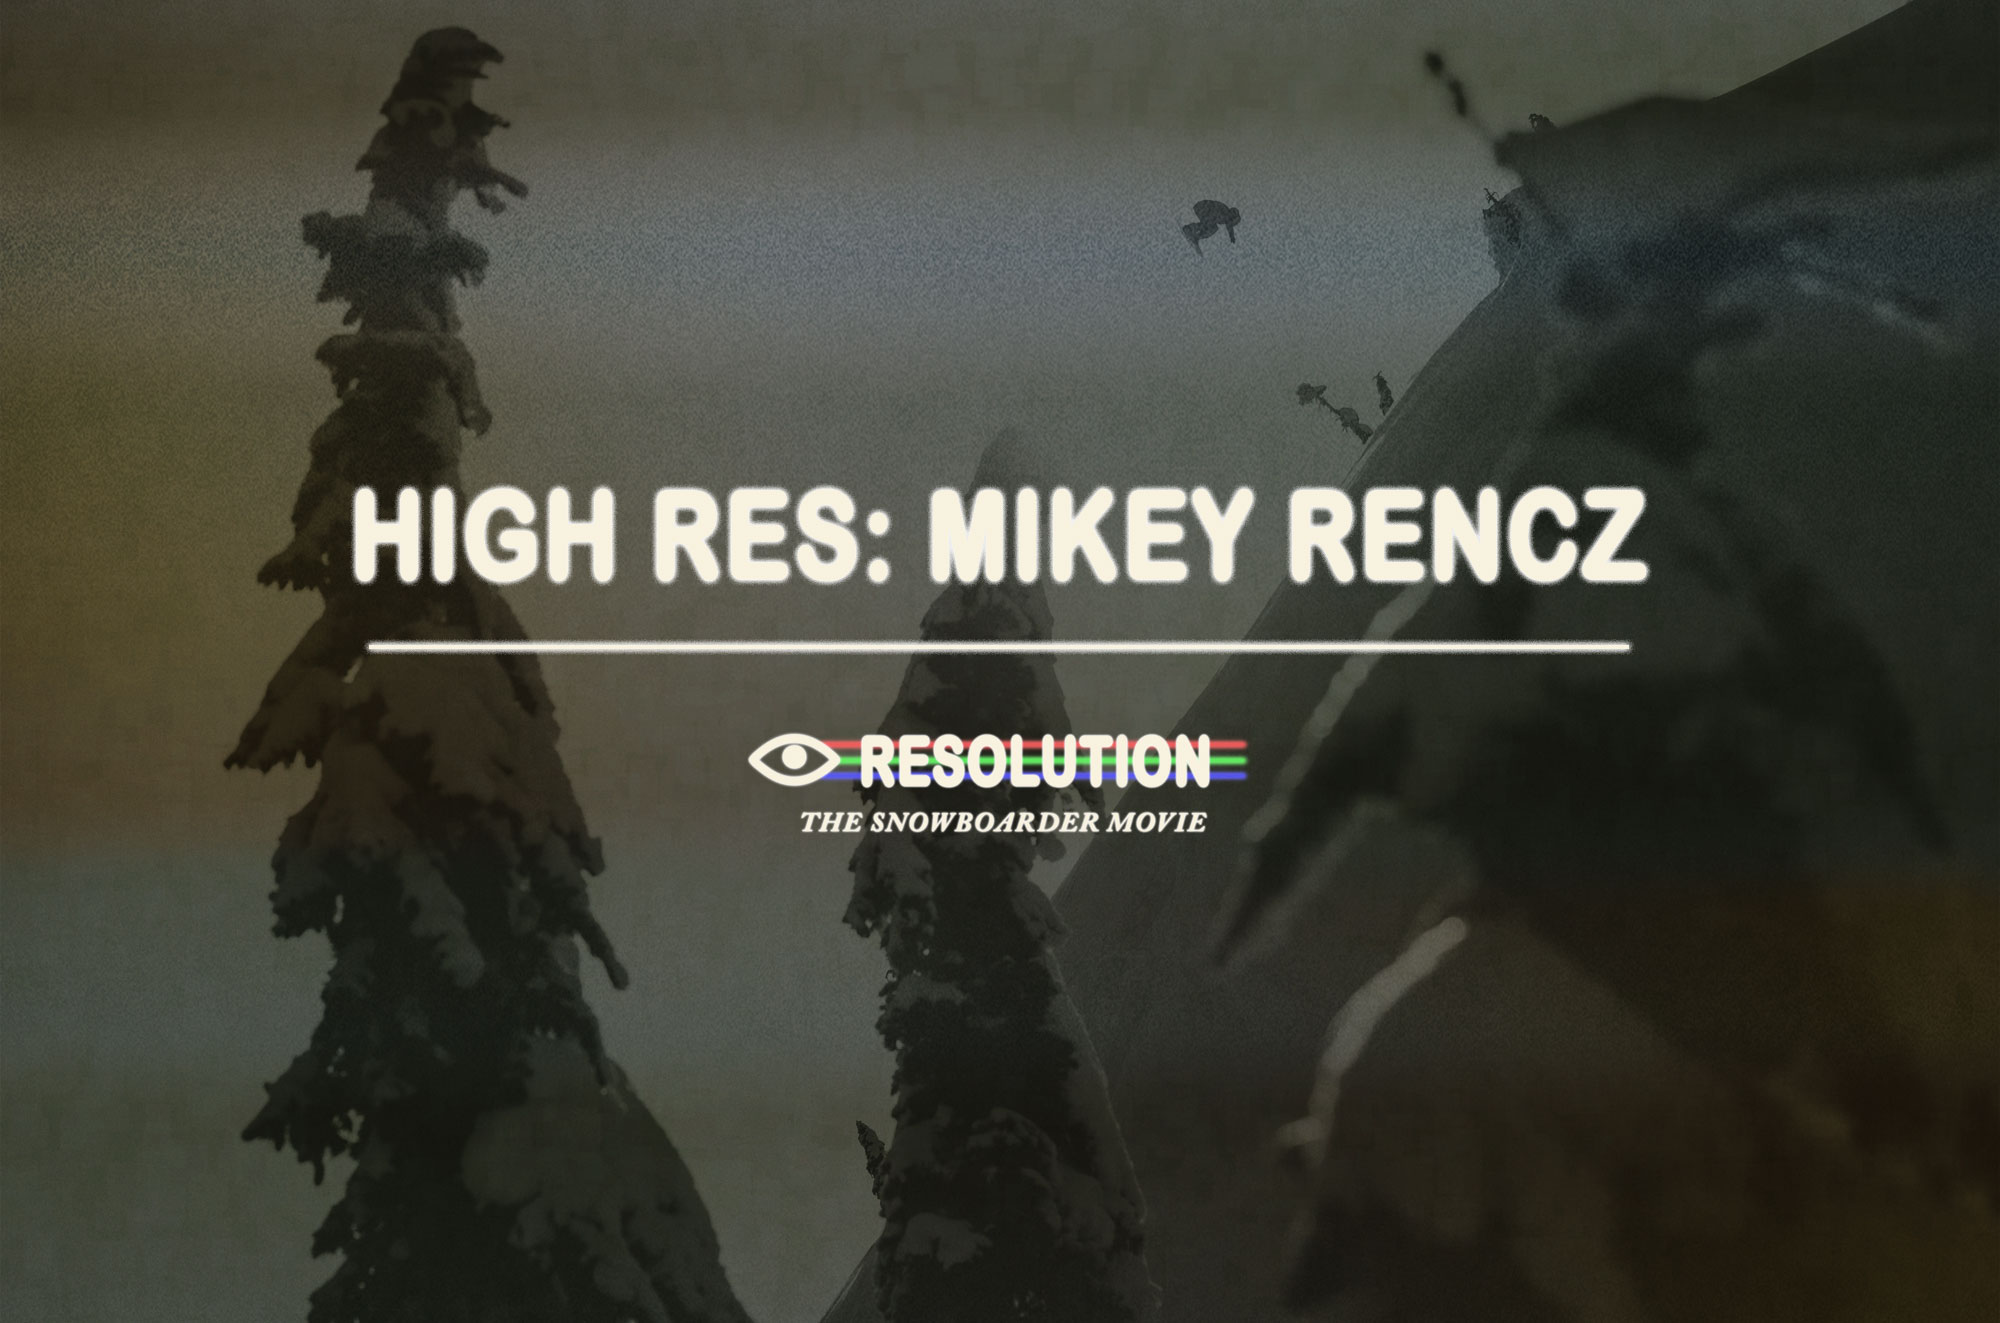 Mikey Rencz interview